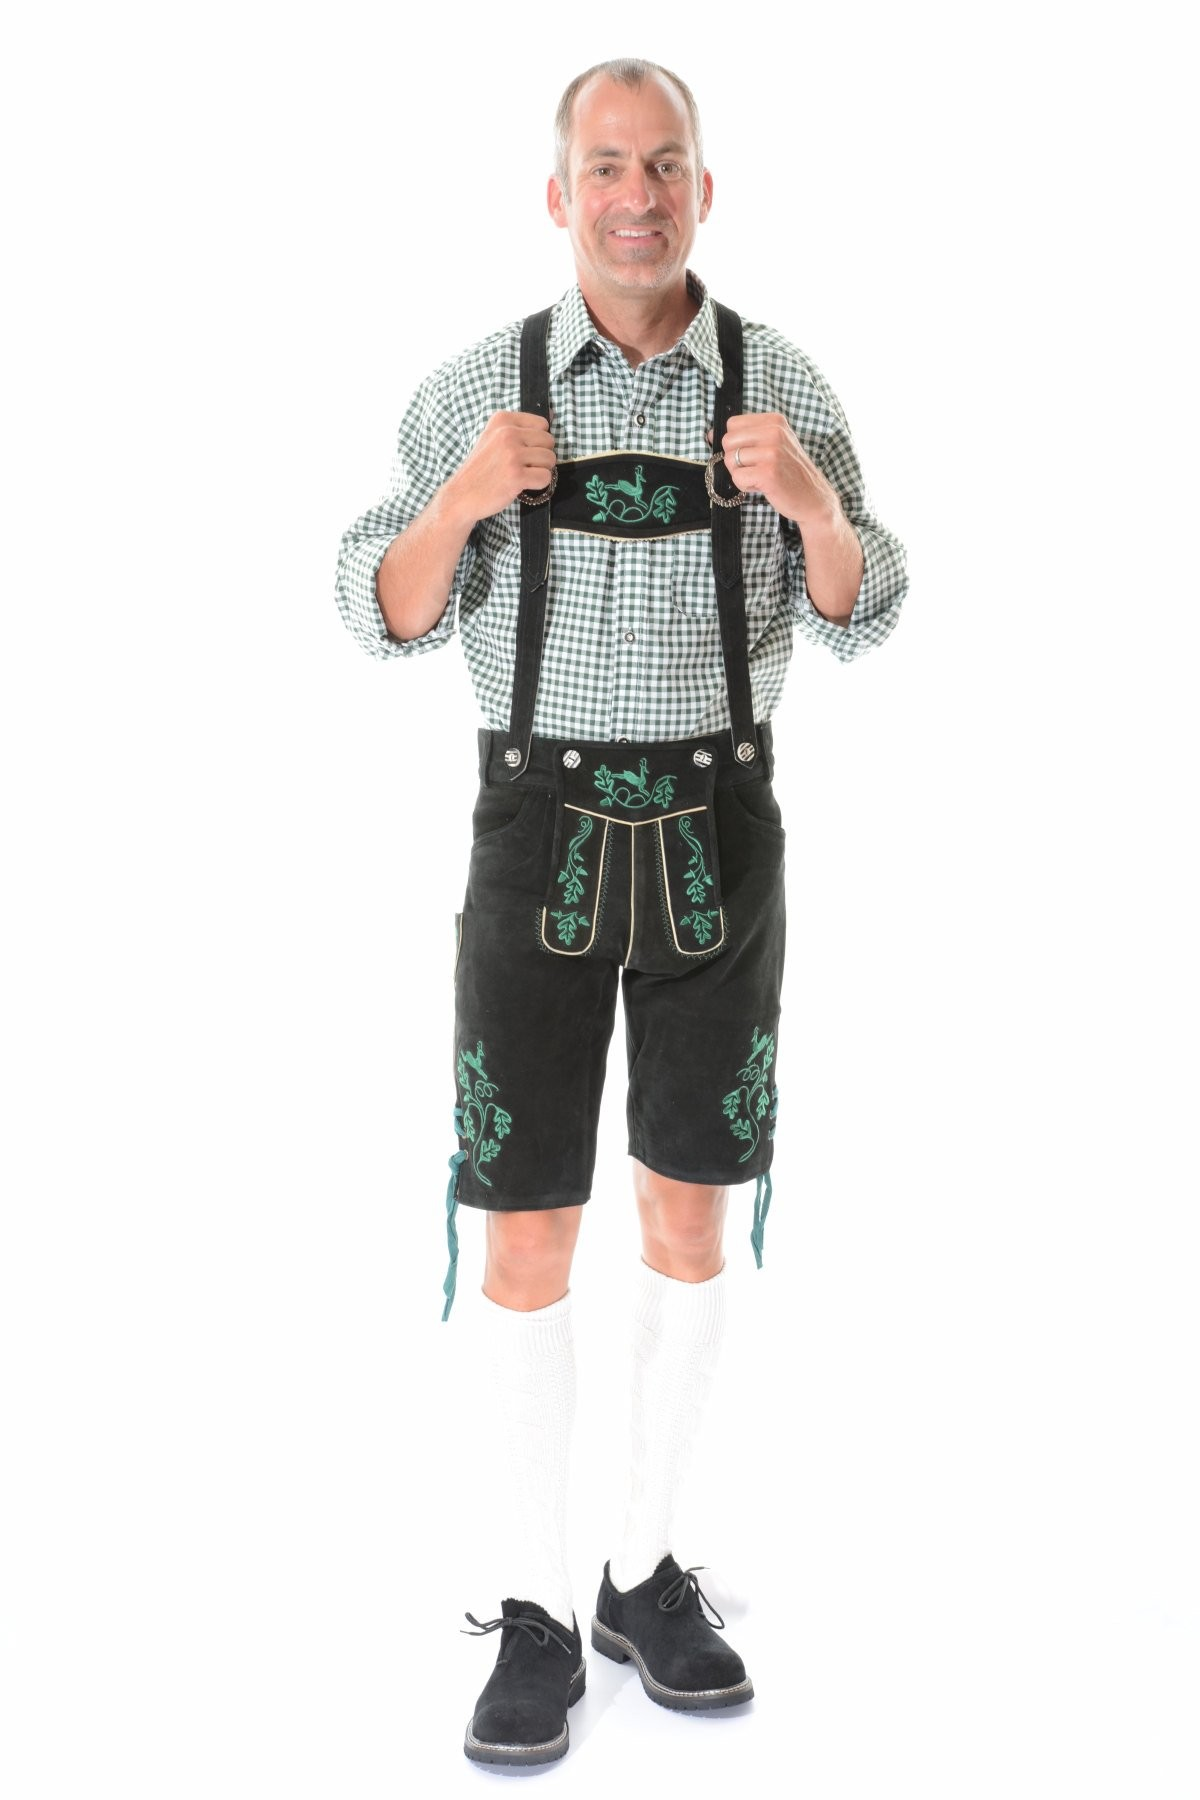 lederhosen images usseek com Barley and Hops Clip Art vector barley and hops